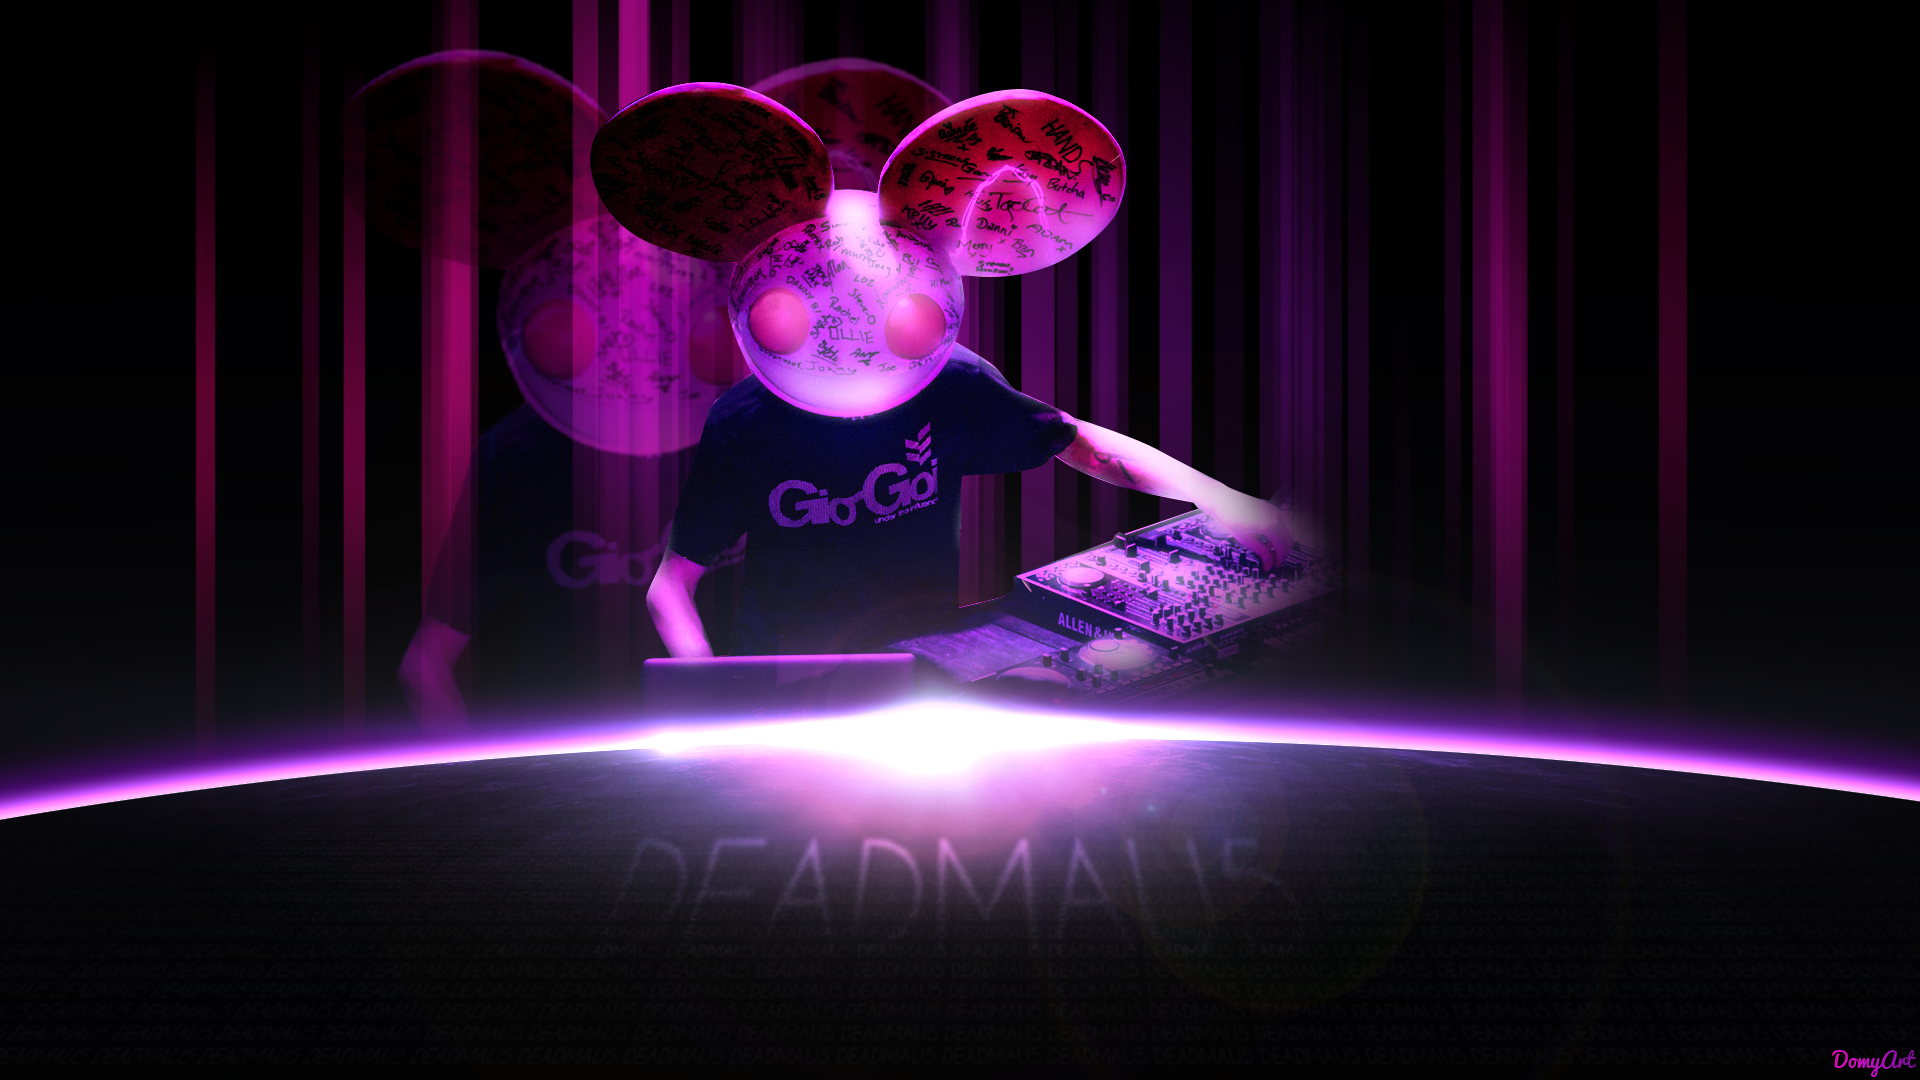 Deadmau5 HD | Wallpup.com